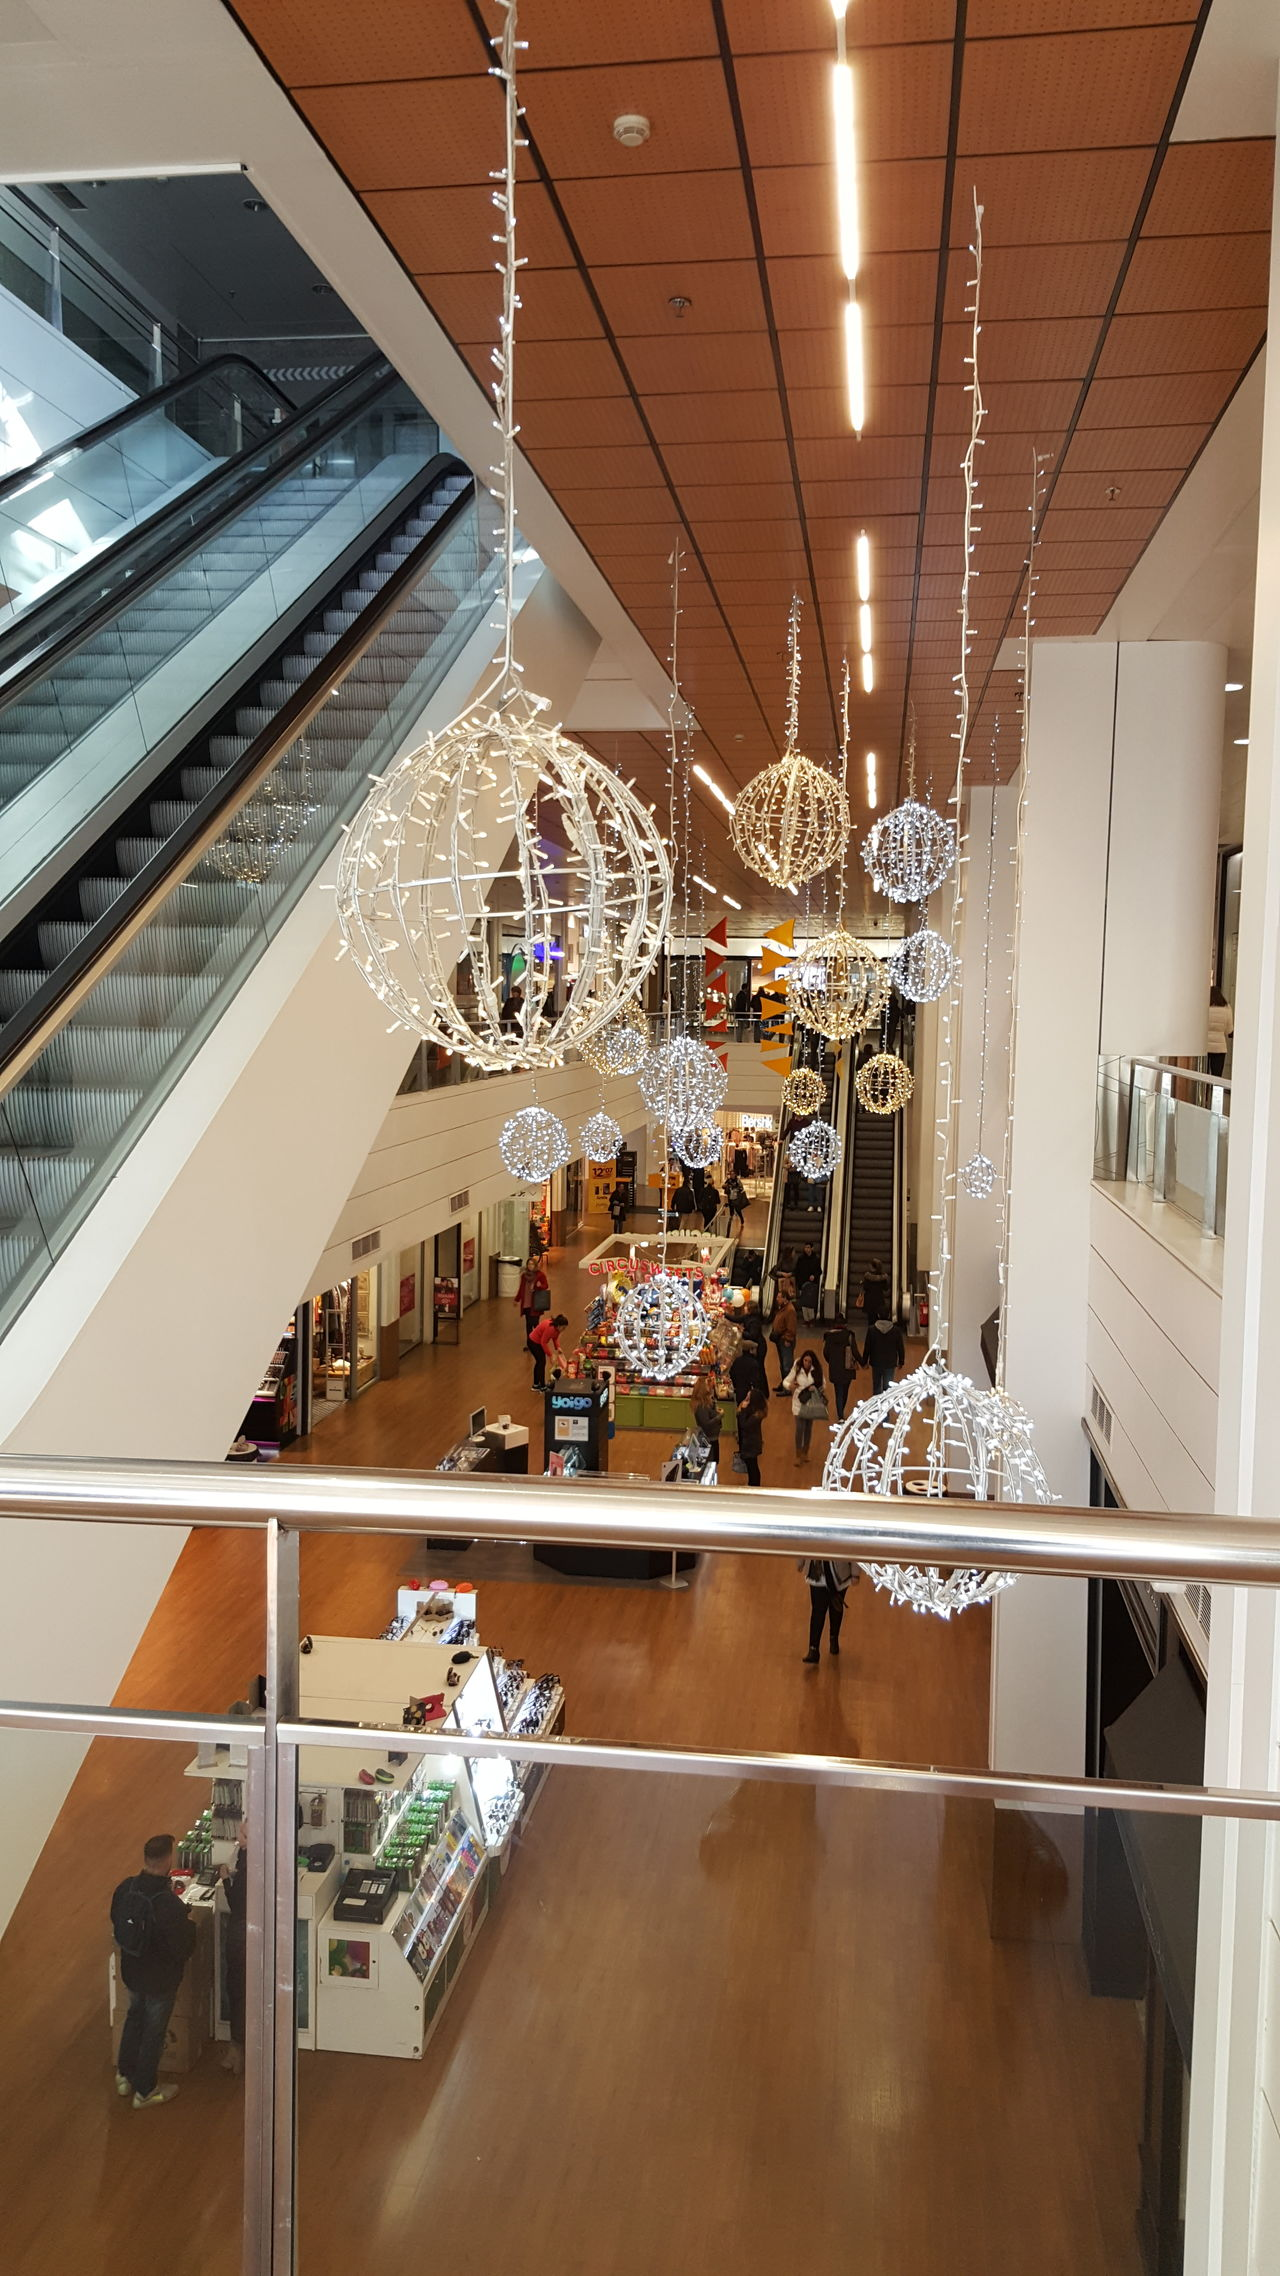 Christmas Decoration Shopping Center Business Fashion Stores Illuminated Reflection Stairs Mechanic Stairs Indoors  Day